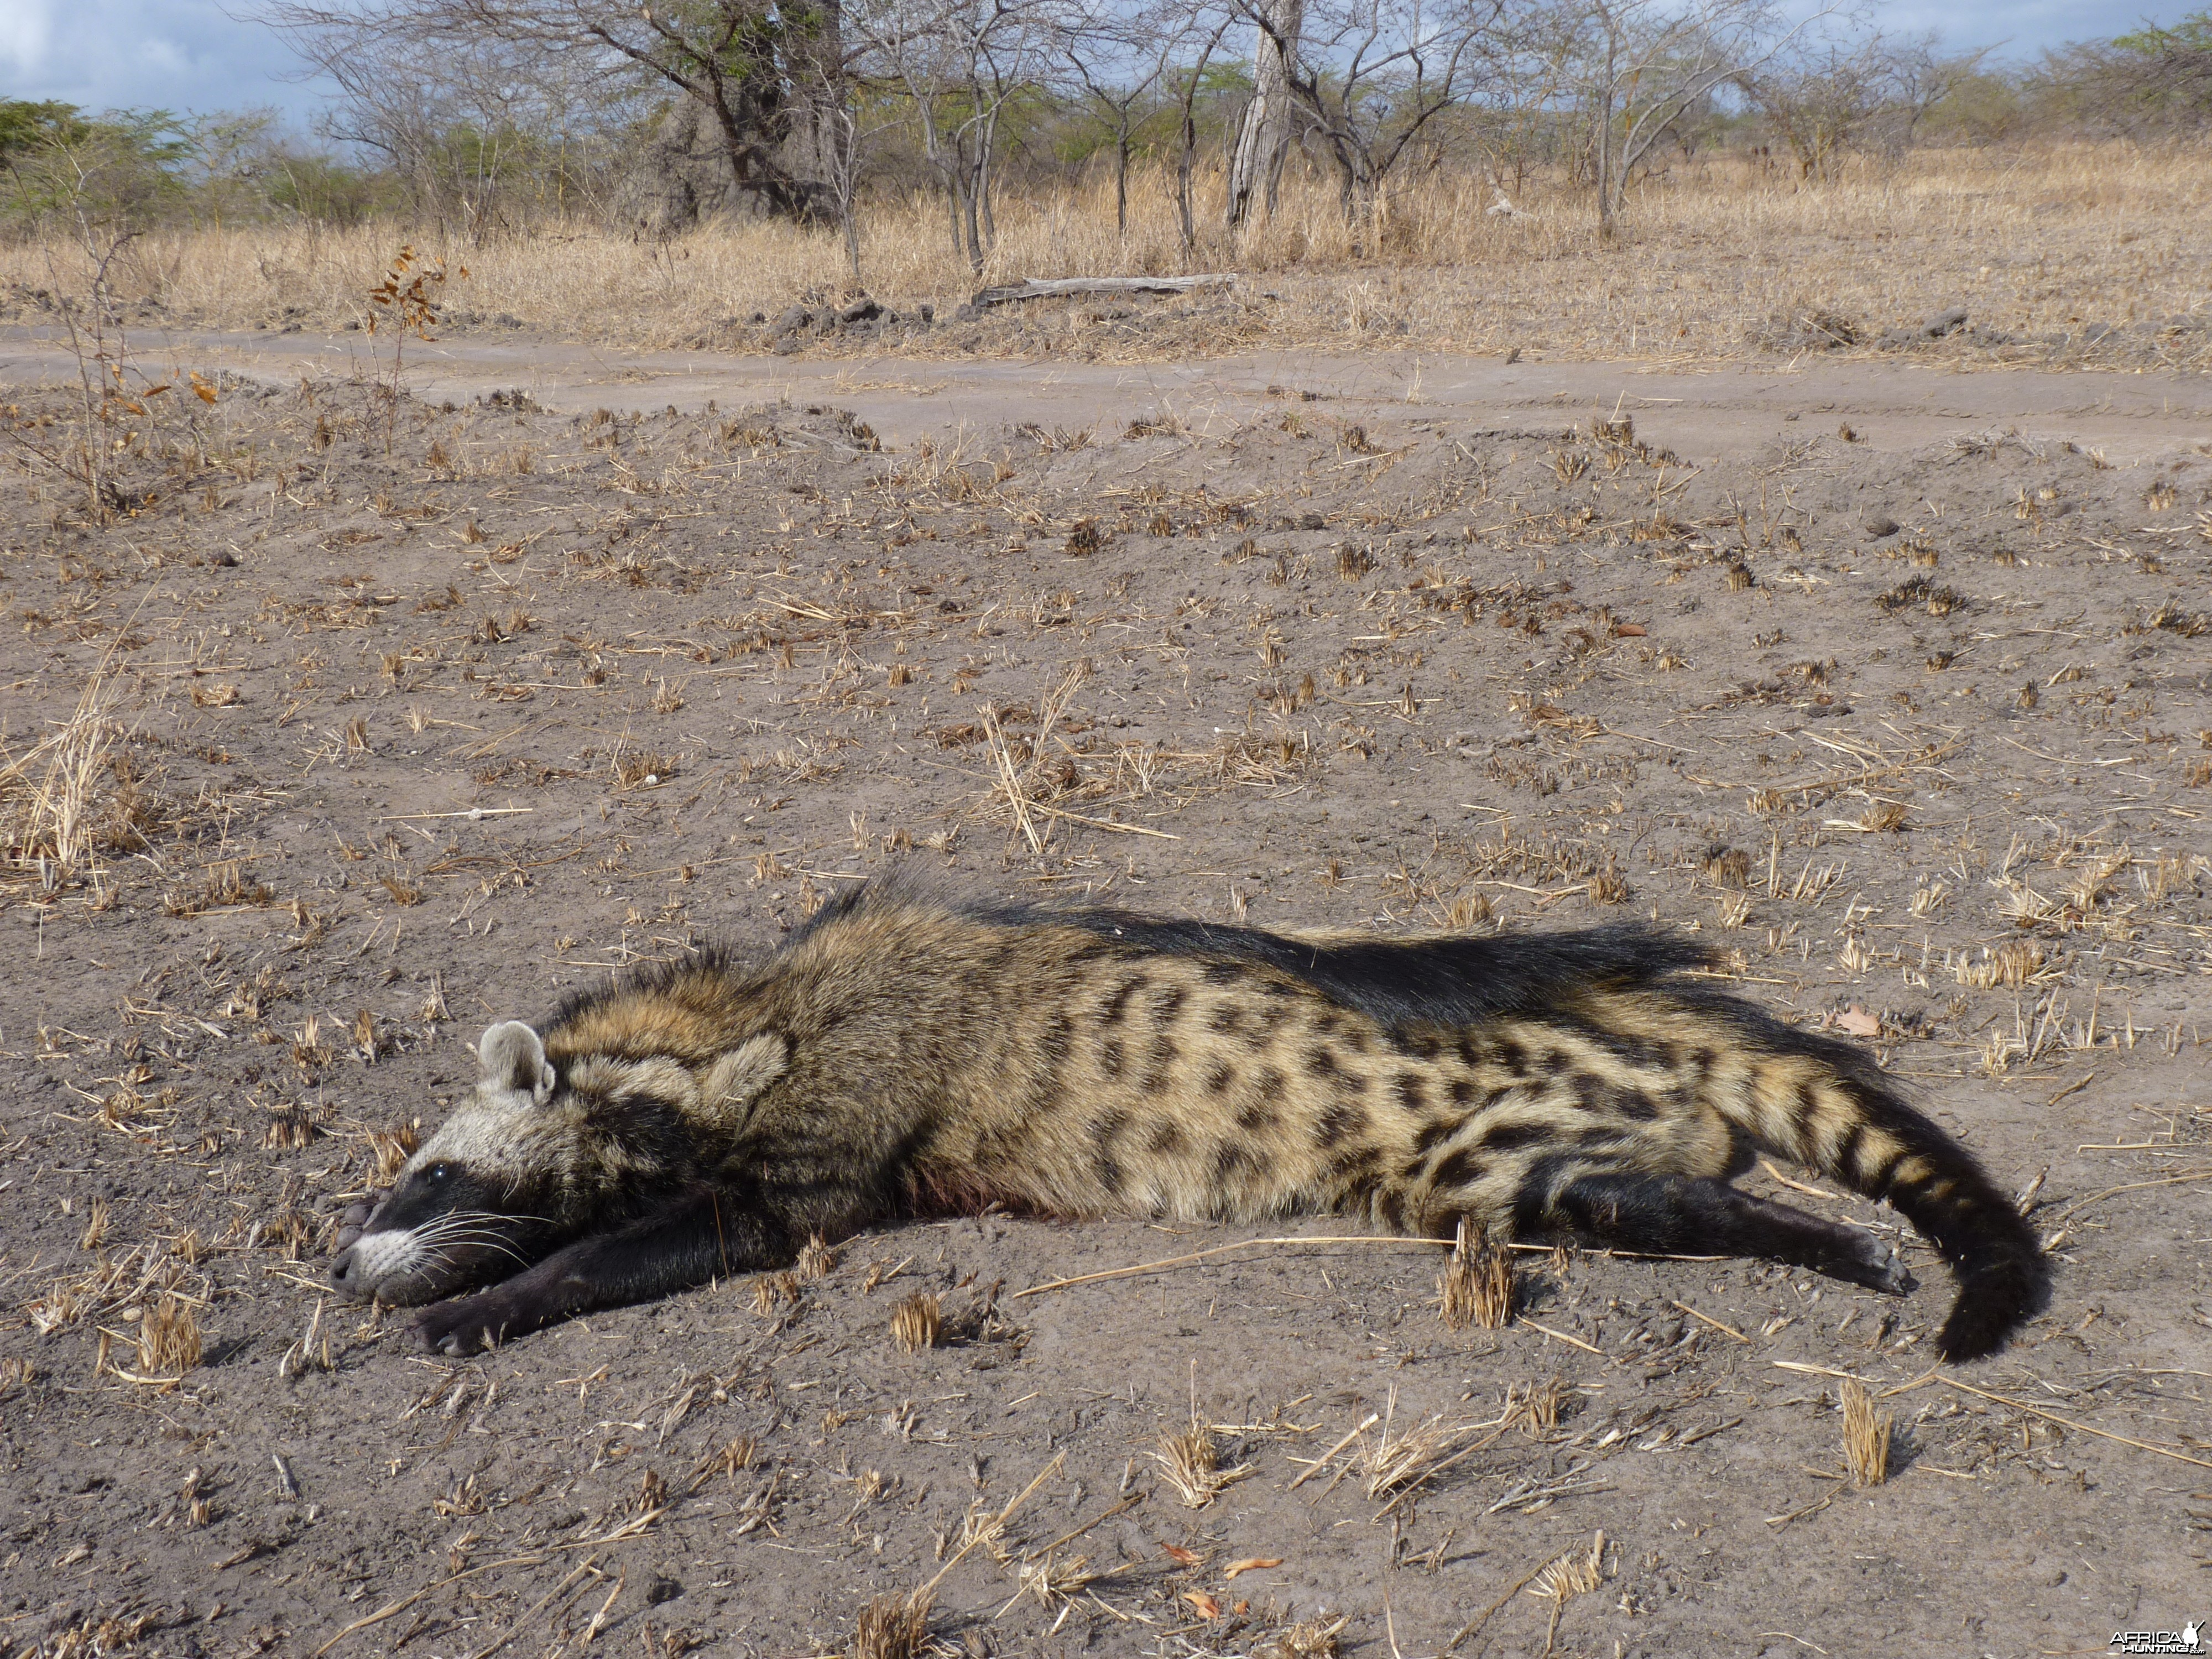 Civet Cat hunted in Tanzania